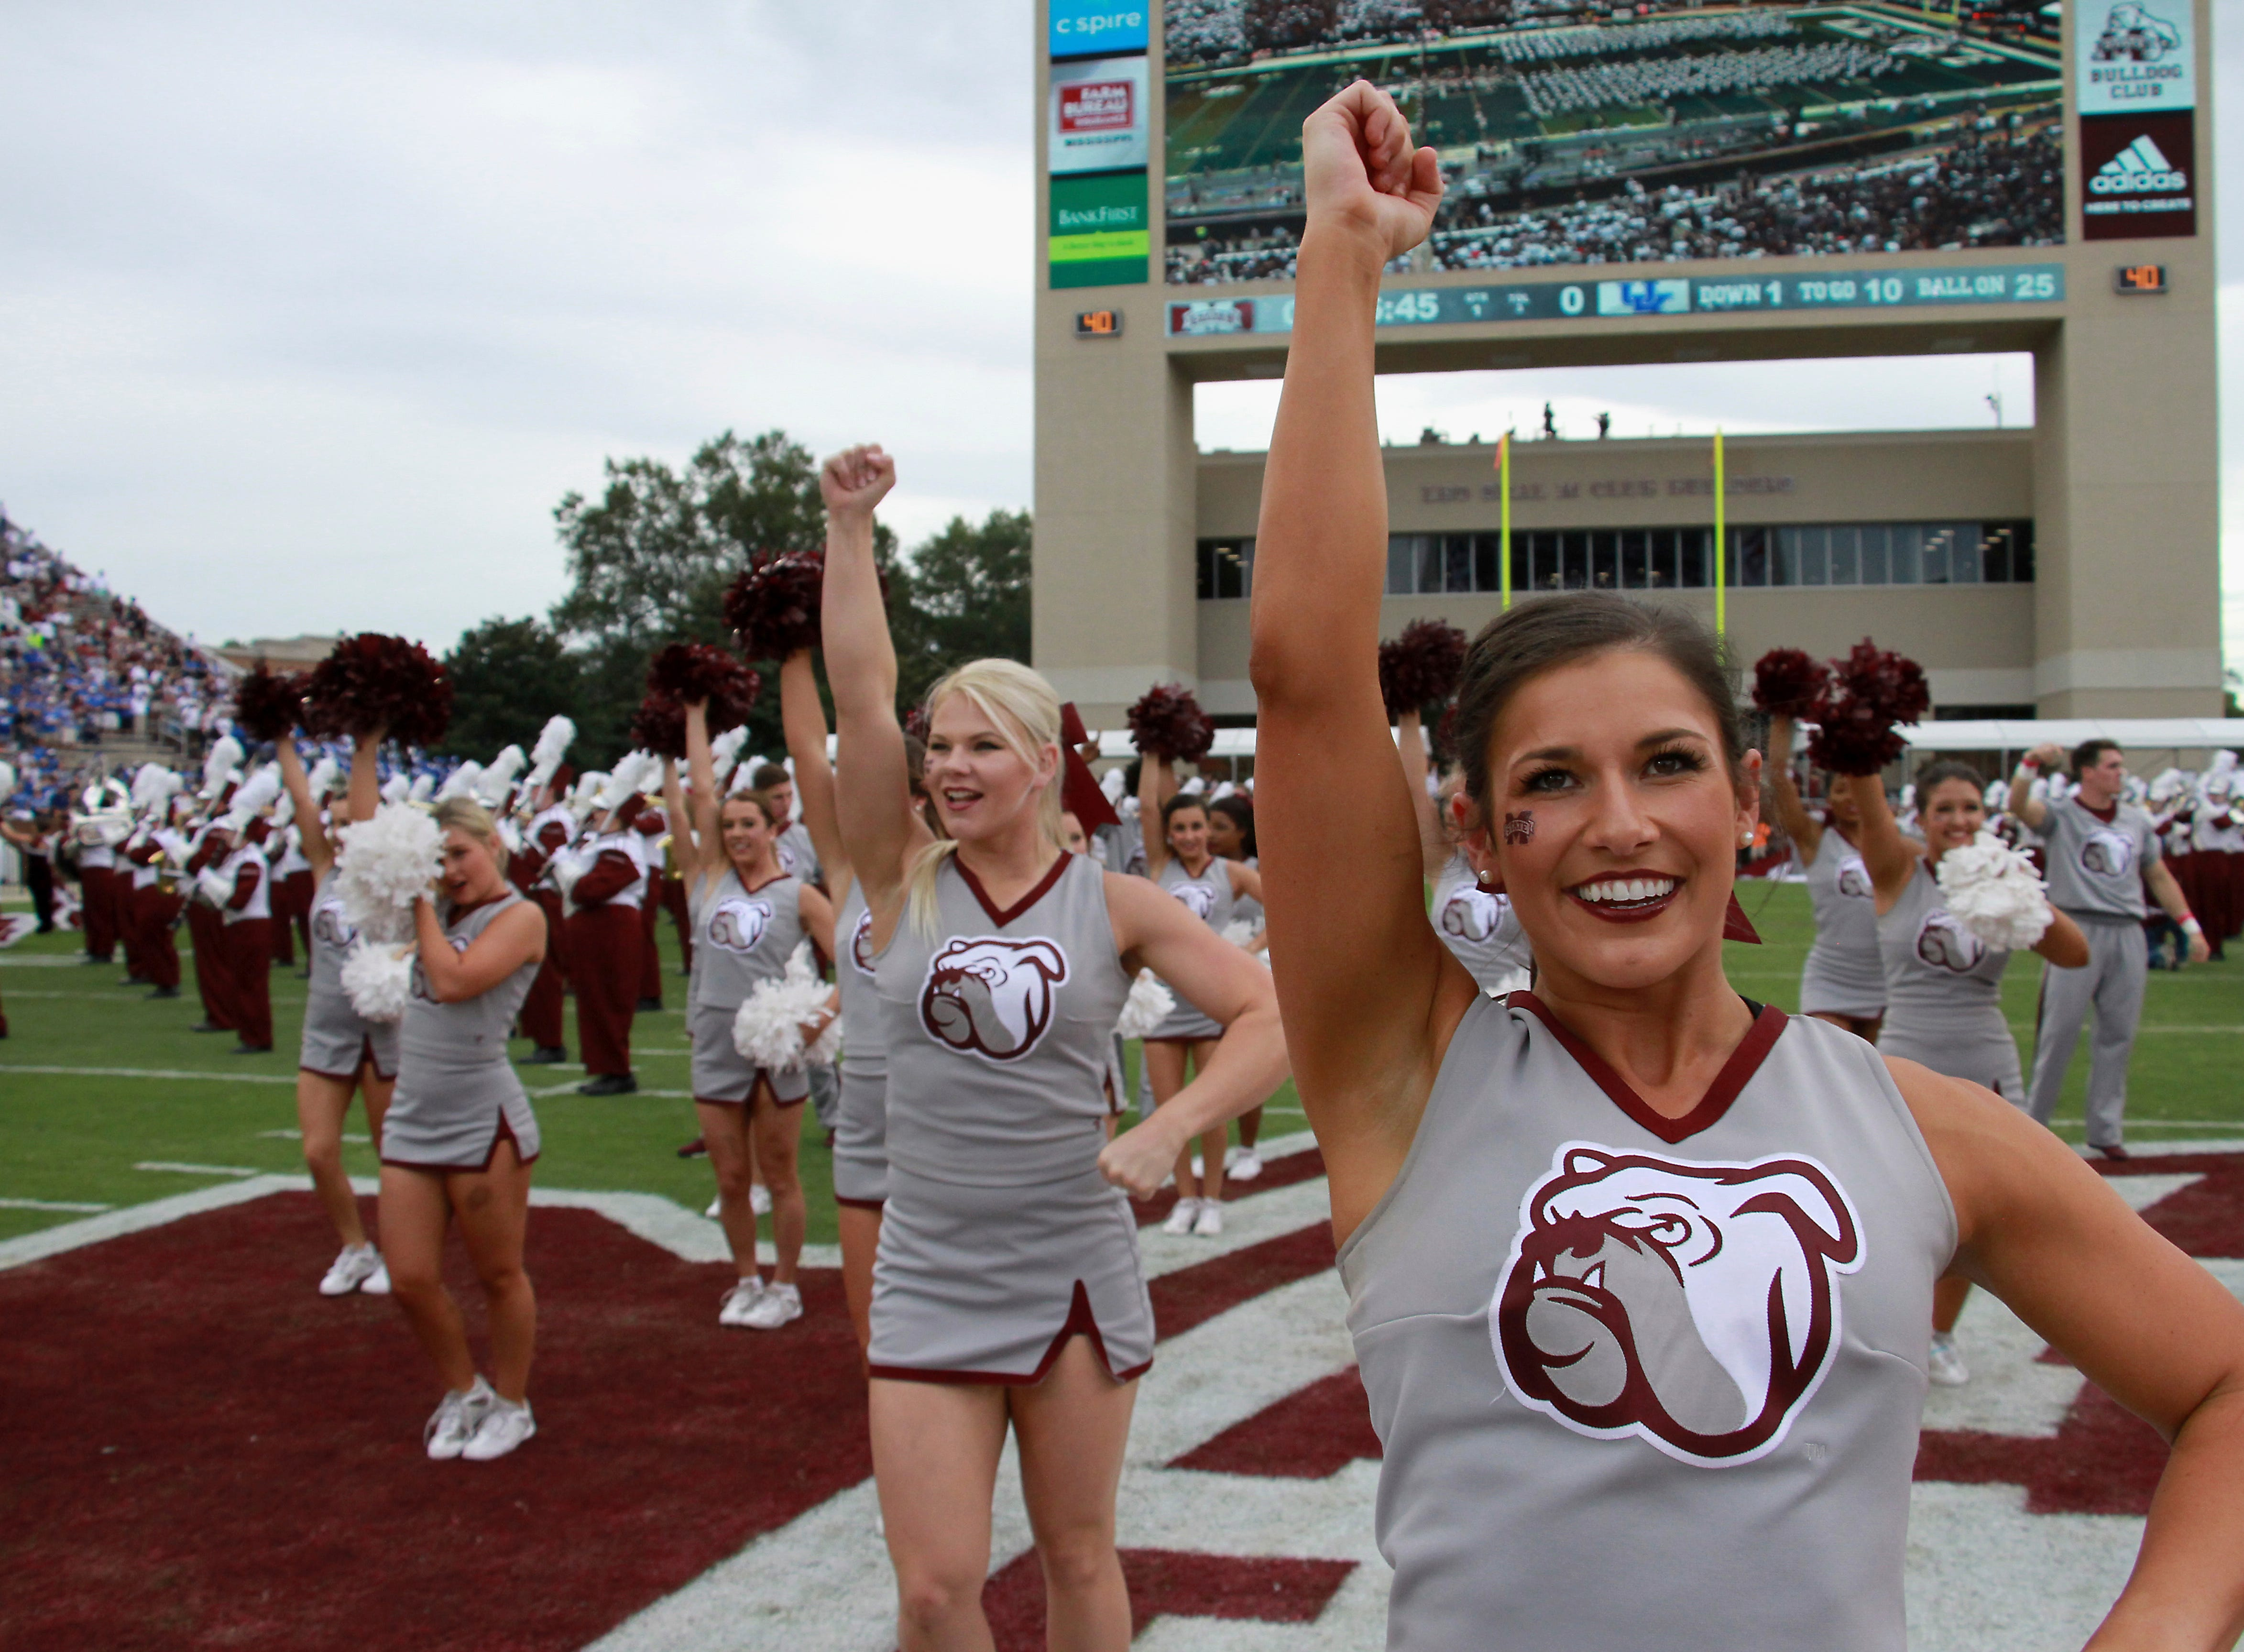 The Mississippi State cheerleaders perform during pregame activities before their NCAA college football game against Kentucky in Starkville, Miss., Saturday, Oct. 21, 2017. (AP Photo/Jim Lytle)